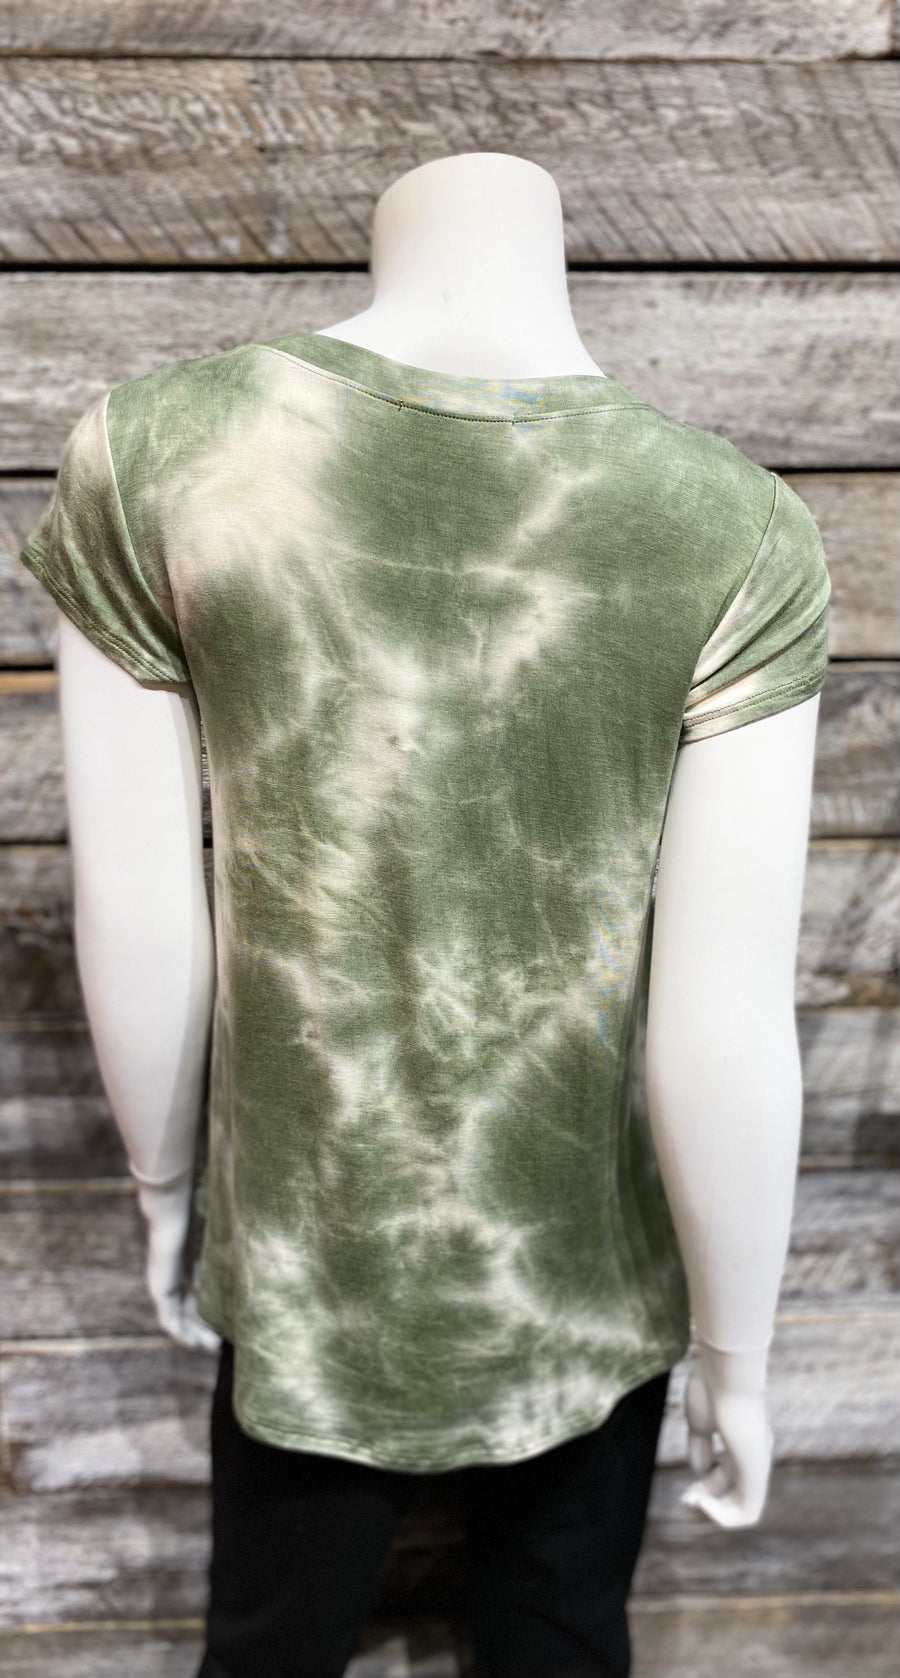 Papillon PT-07110 Soft Tie Dye Stretch T-Shirt - Moss